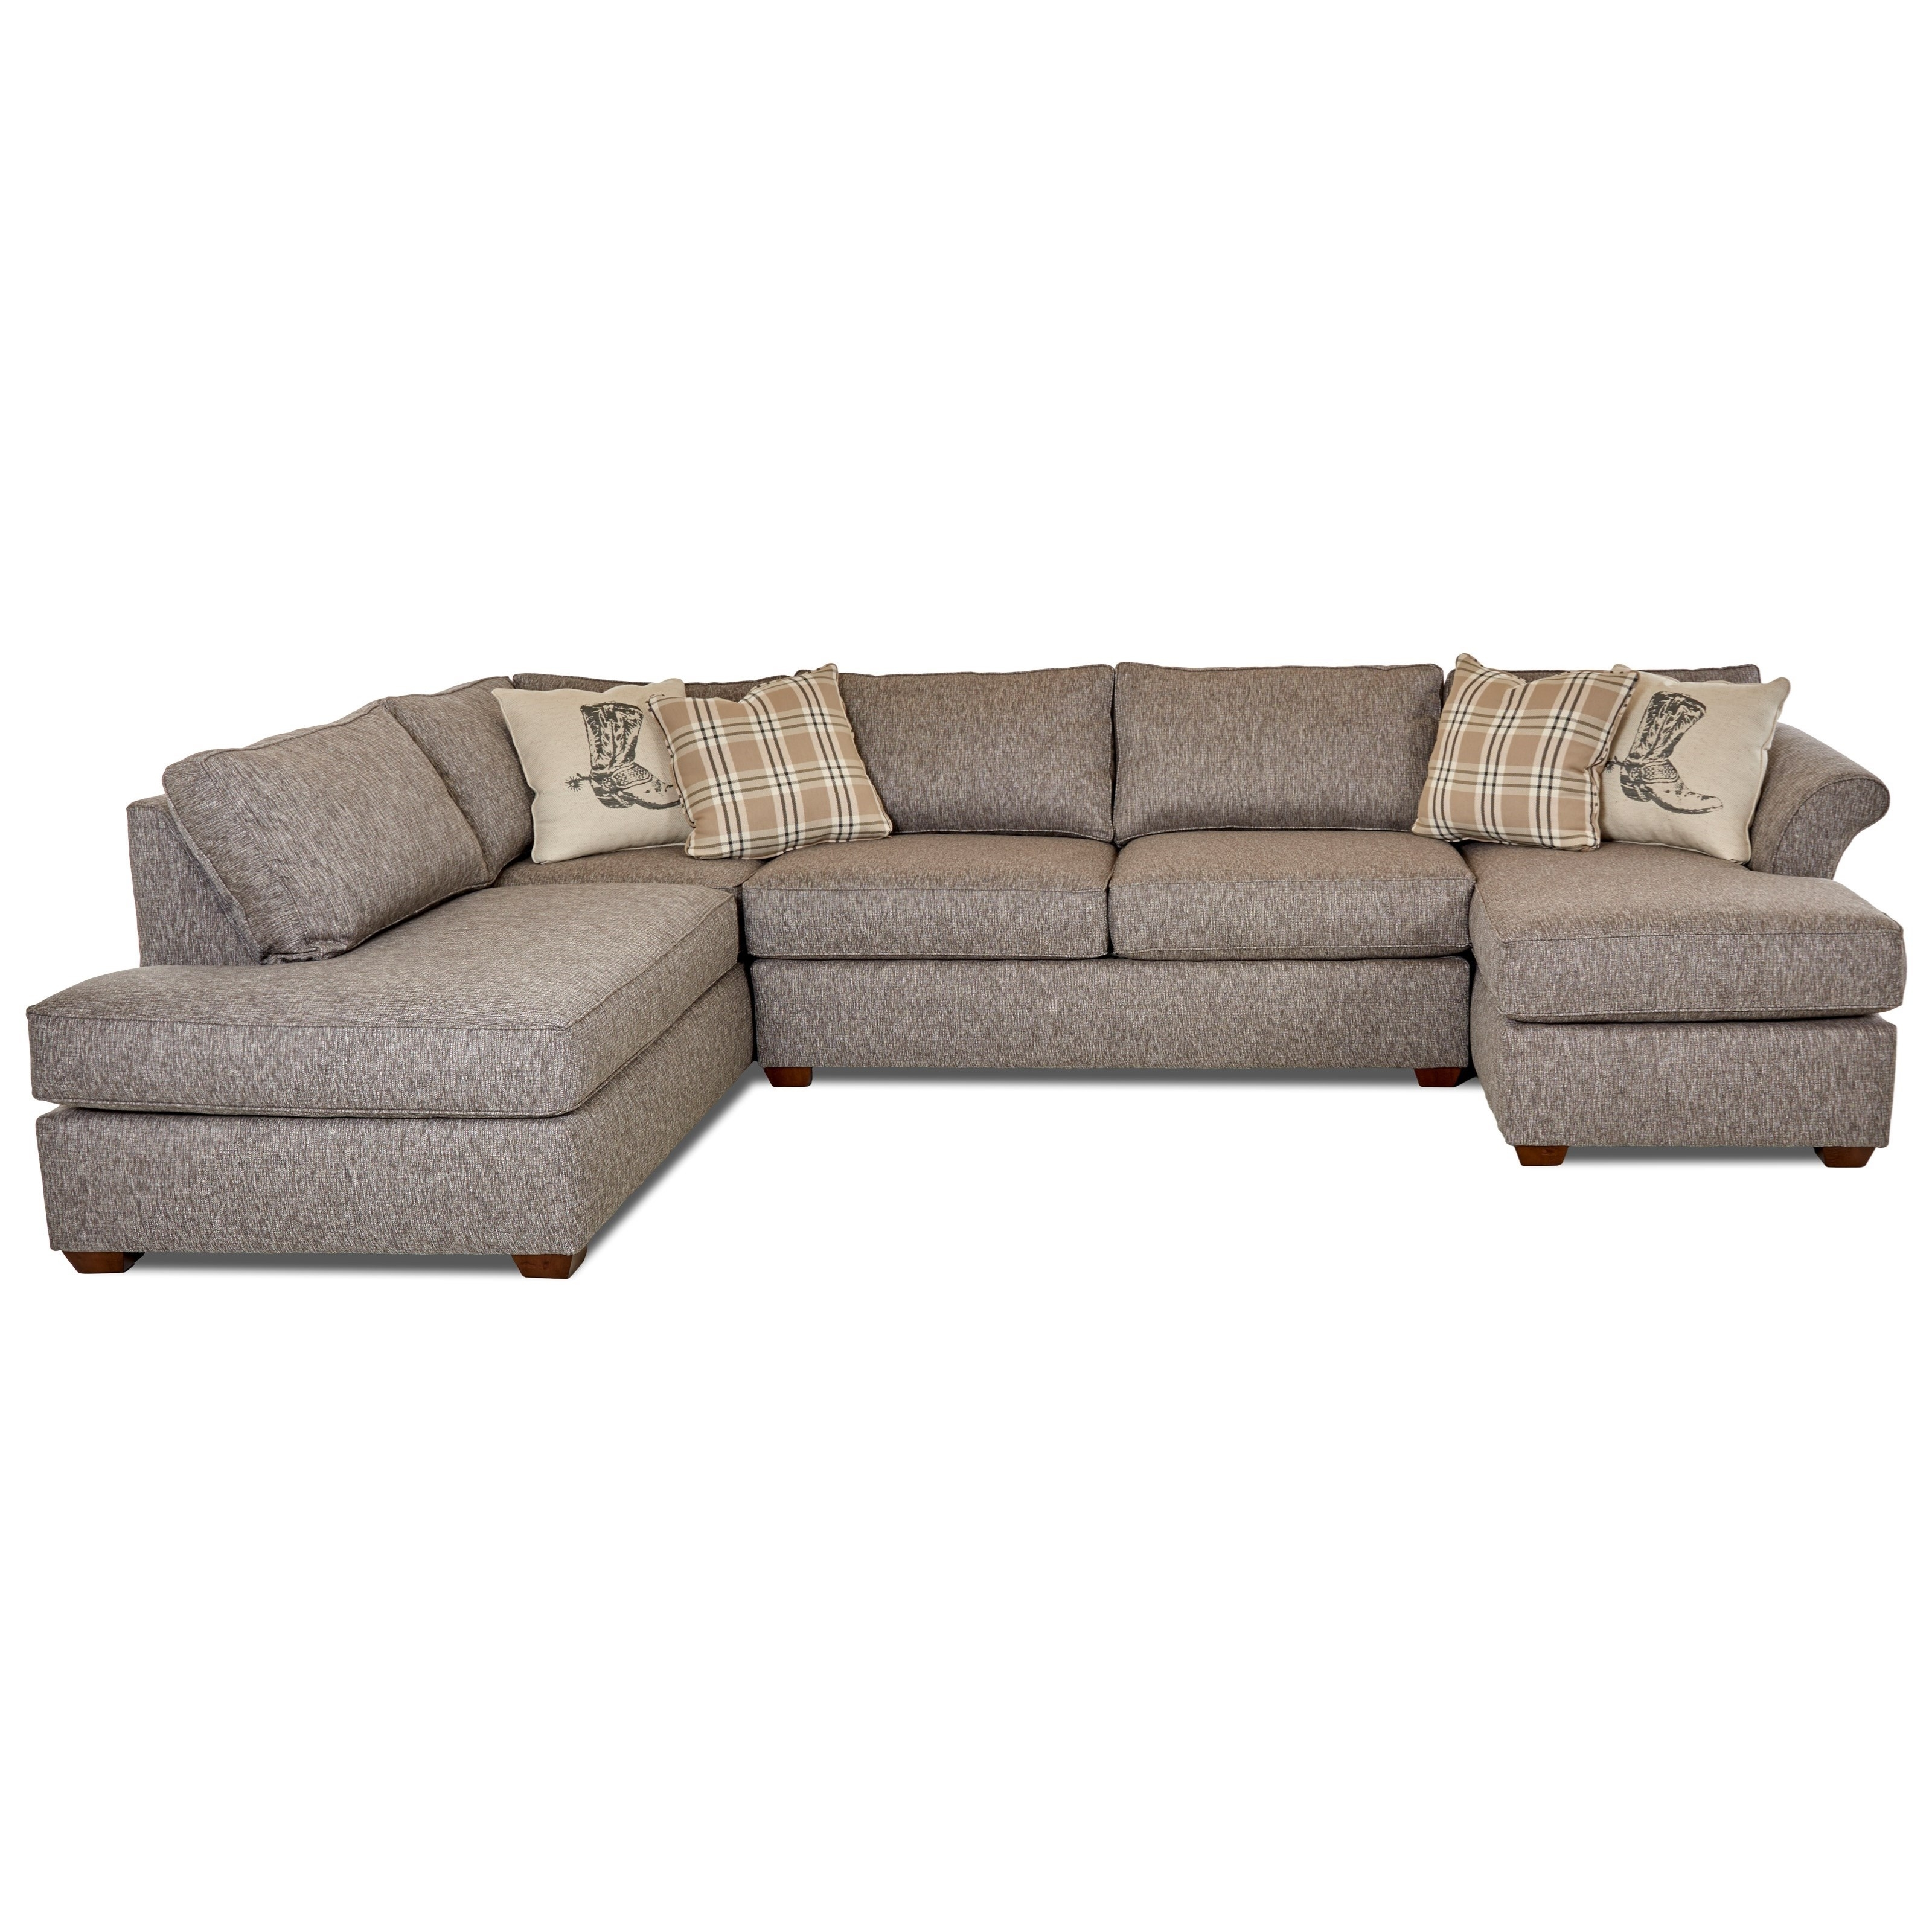 Klaussner Jaxon Three Piece Sectional Sofa With Flared Arms And Laf With Sierra Foam Ii 3 Piece Sectionals (Image 19 of 25)